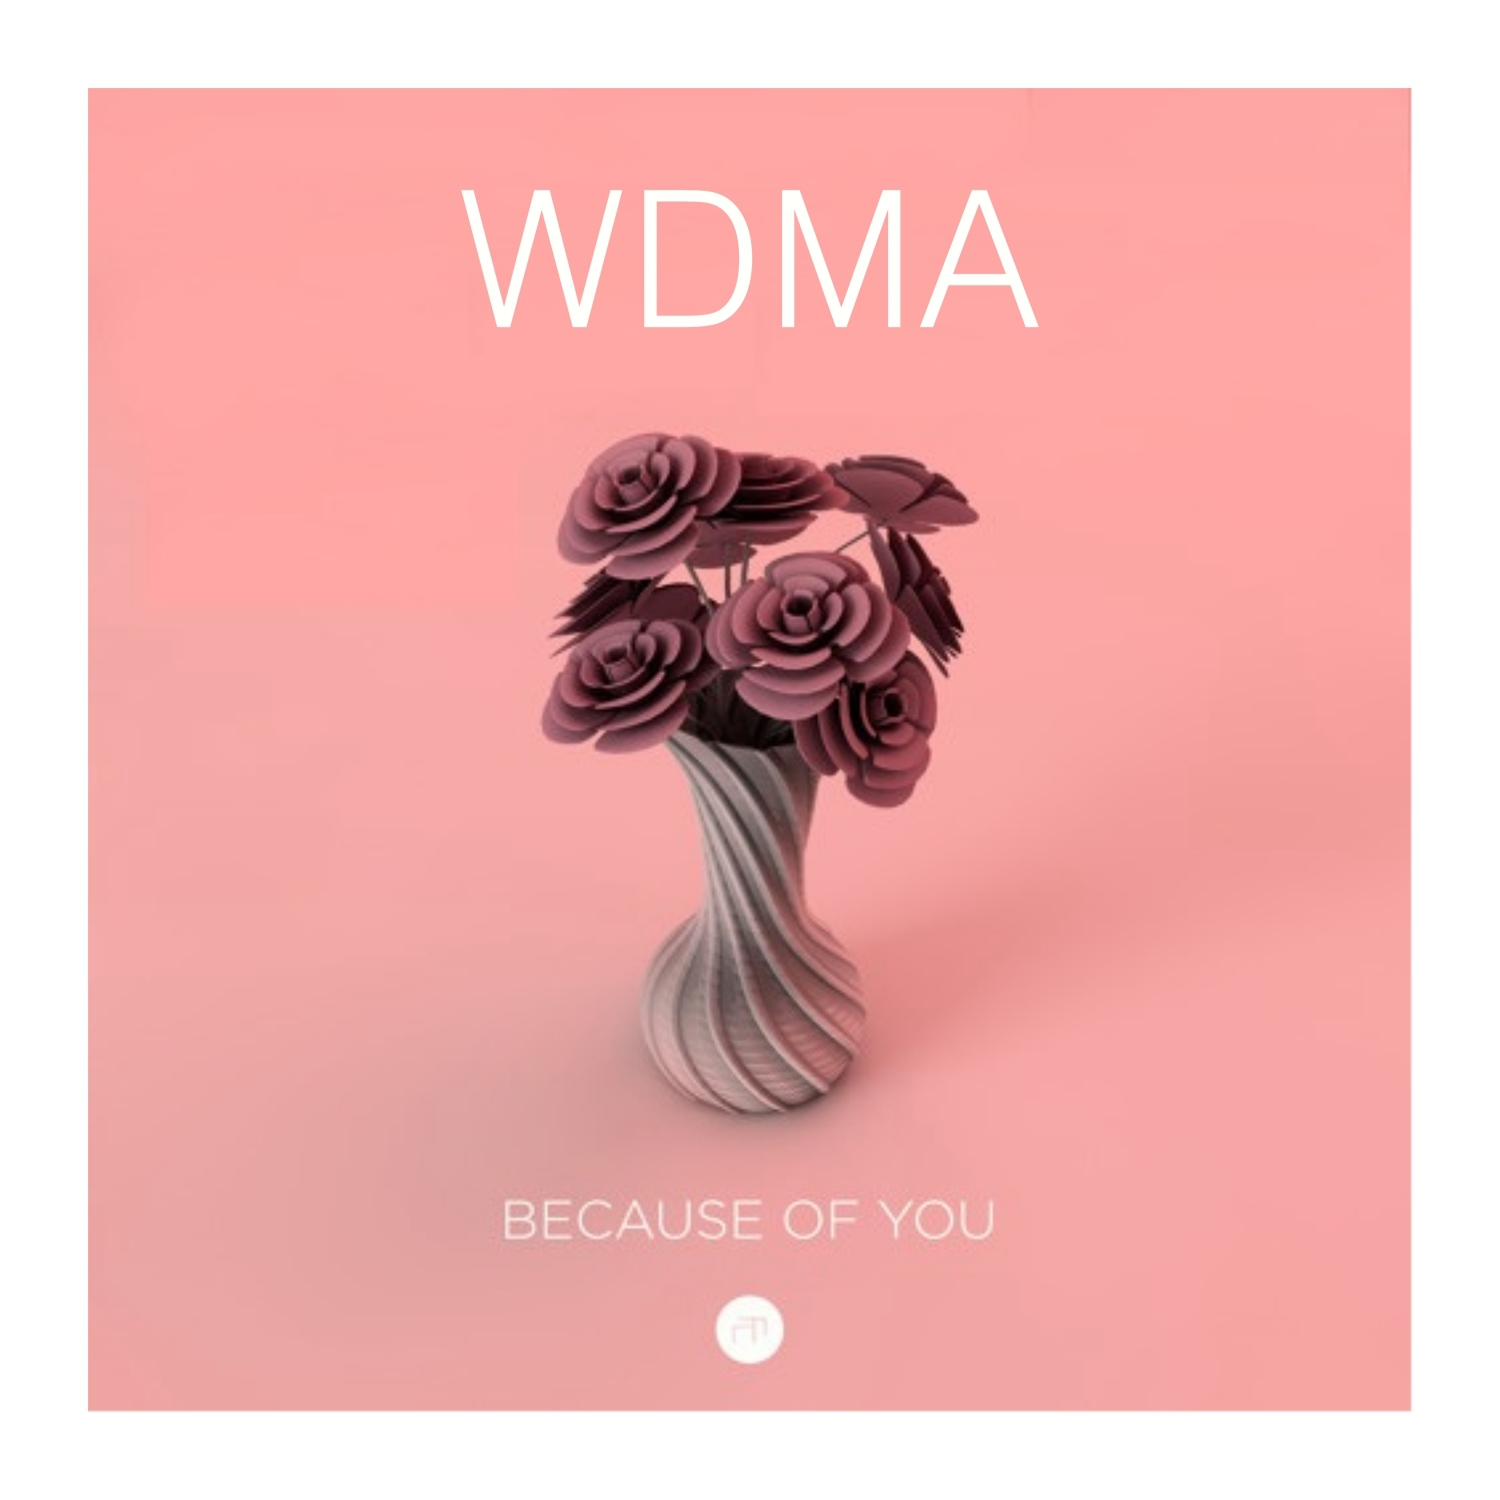 WDMA - Because of You (Original Mix)